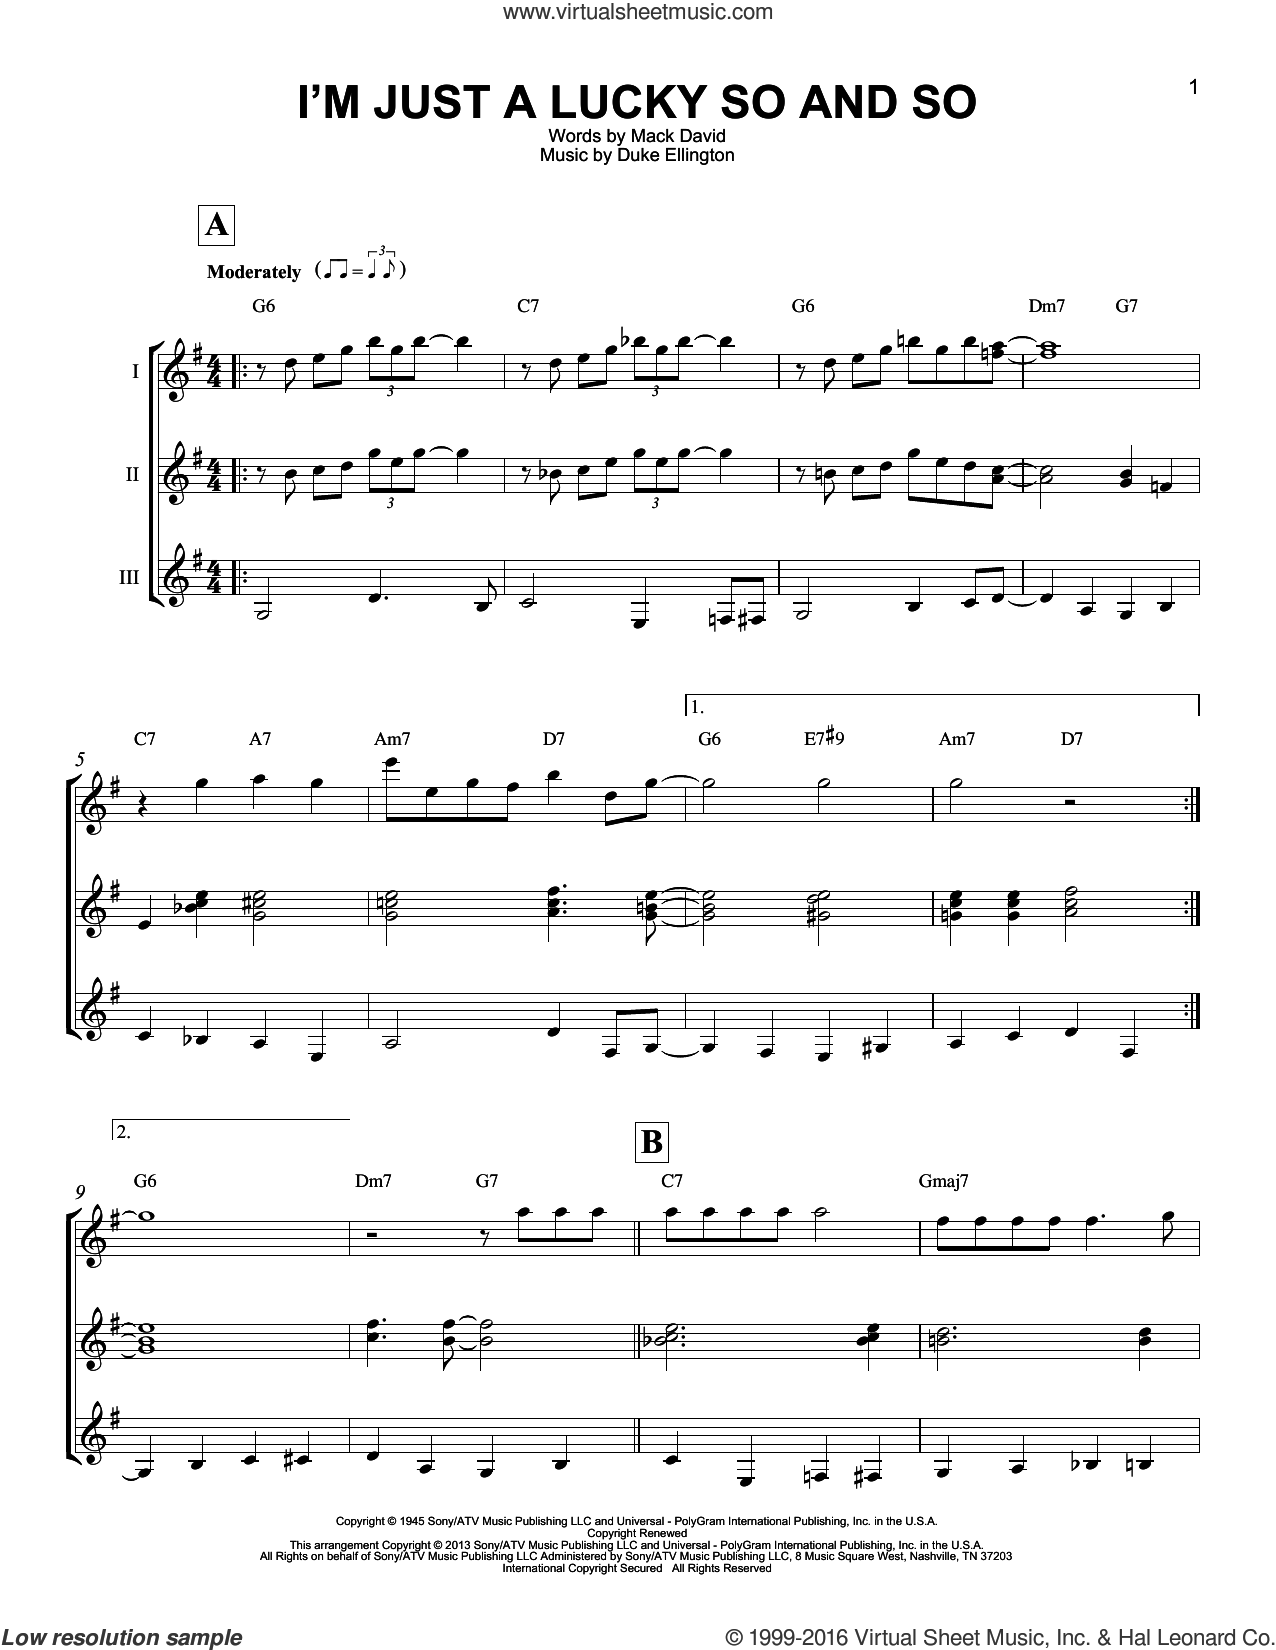 I'm Just A Lucky So And So sheet music for guitar ensemble by Duke Ellington and Mack David, intermediate skill level